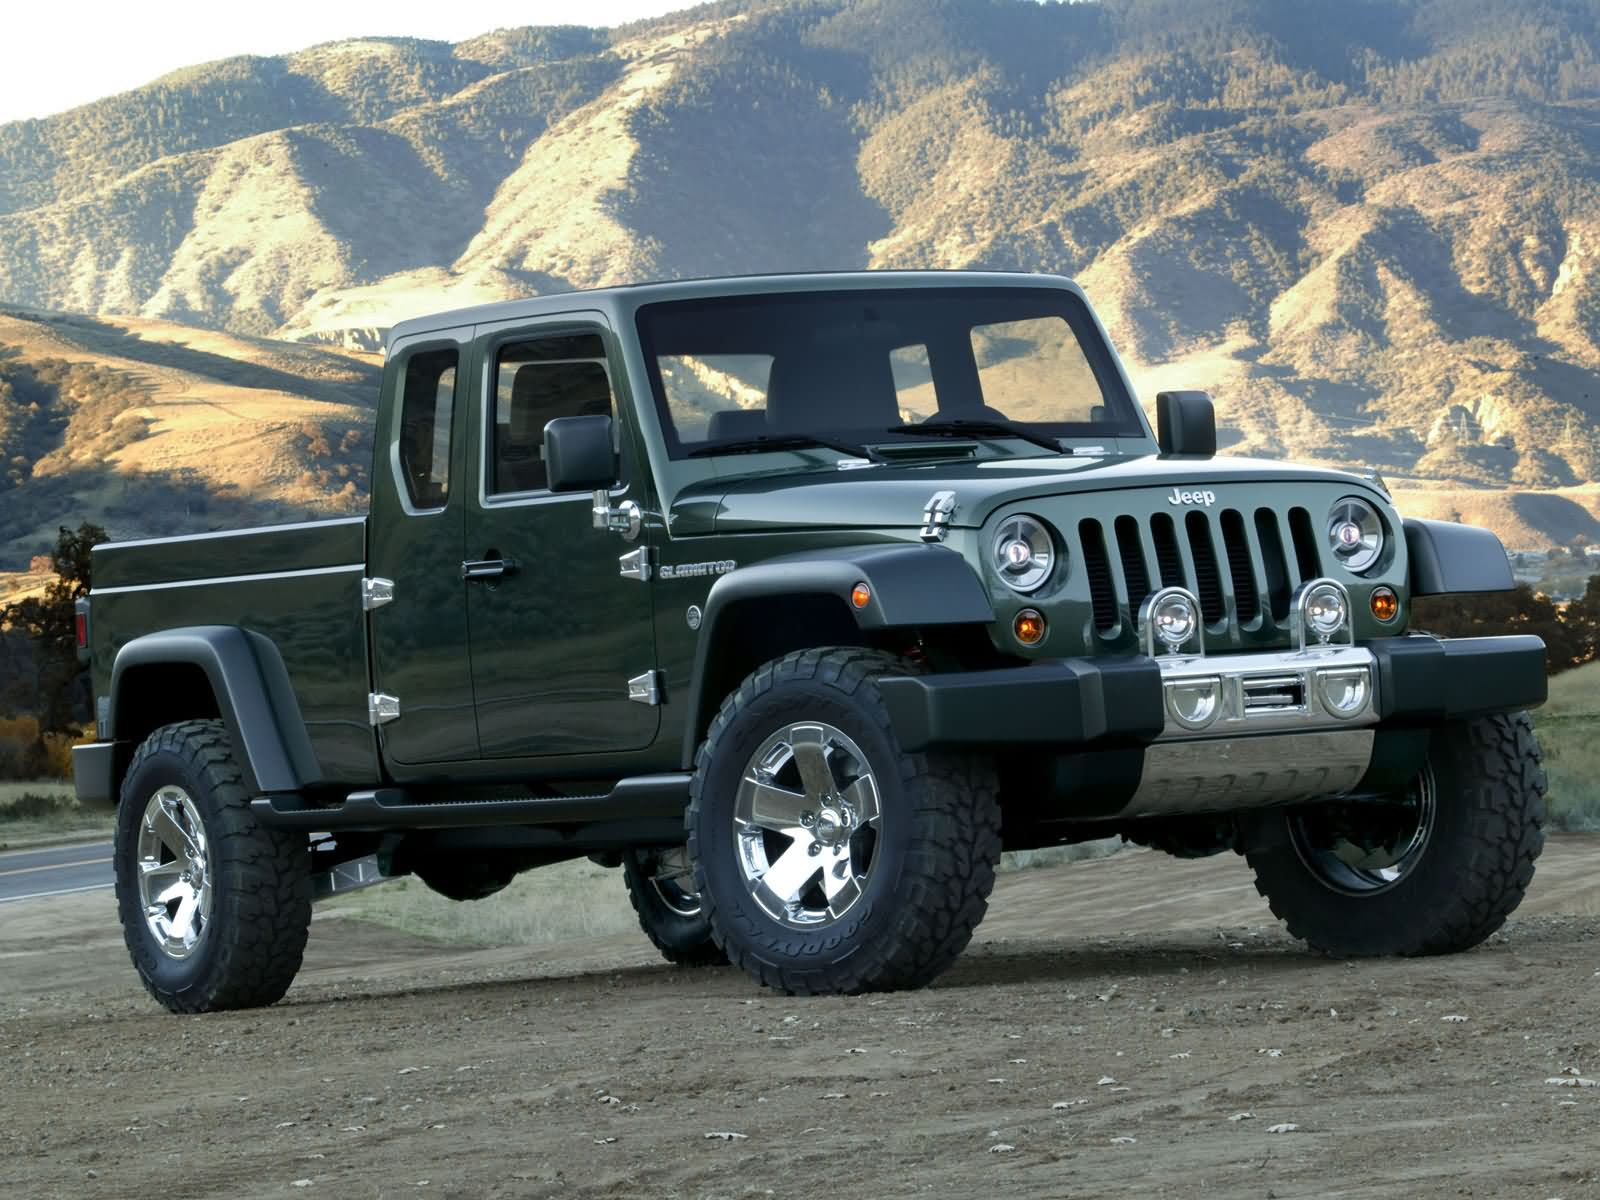 Jeep Gladiator photo 19781